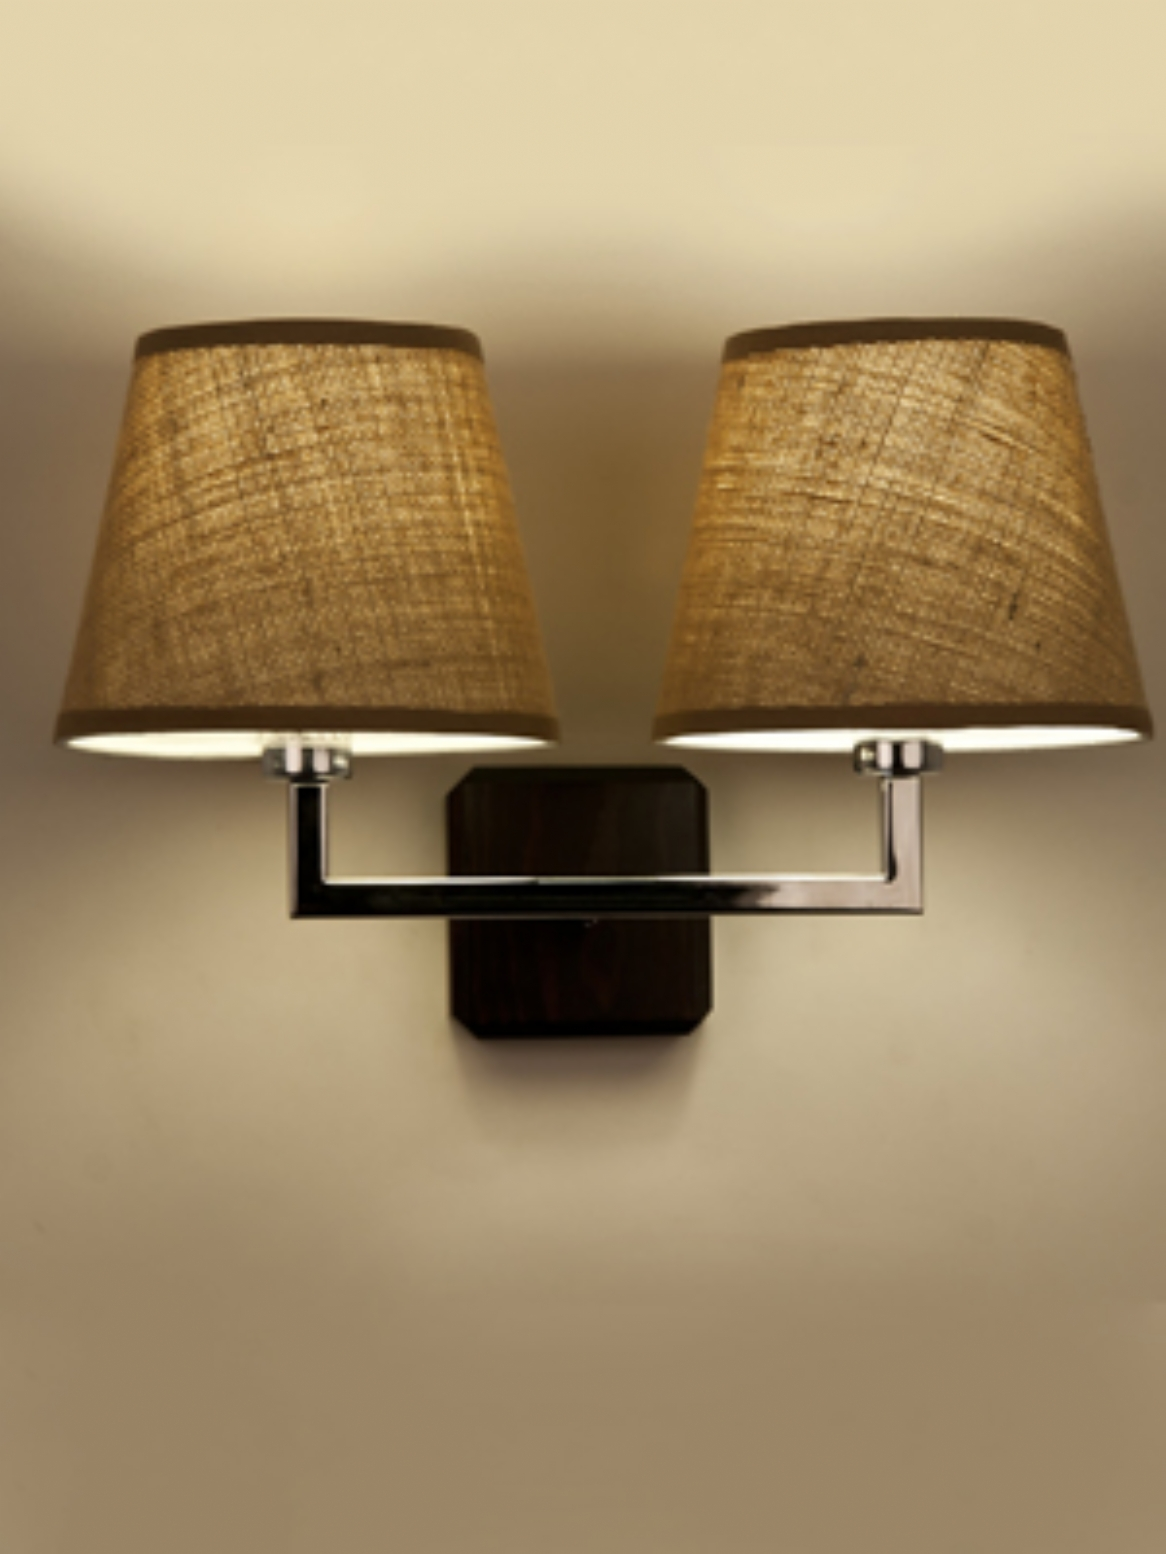 Wall Lamps With Shades : Fabric wall light shades - upgrade your interior design on a small budget Warisan Lighting